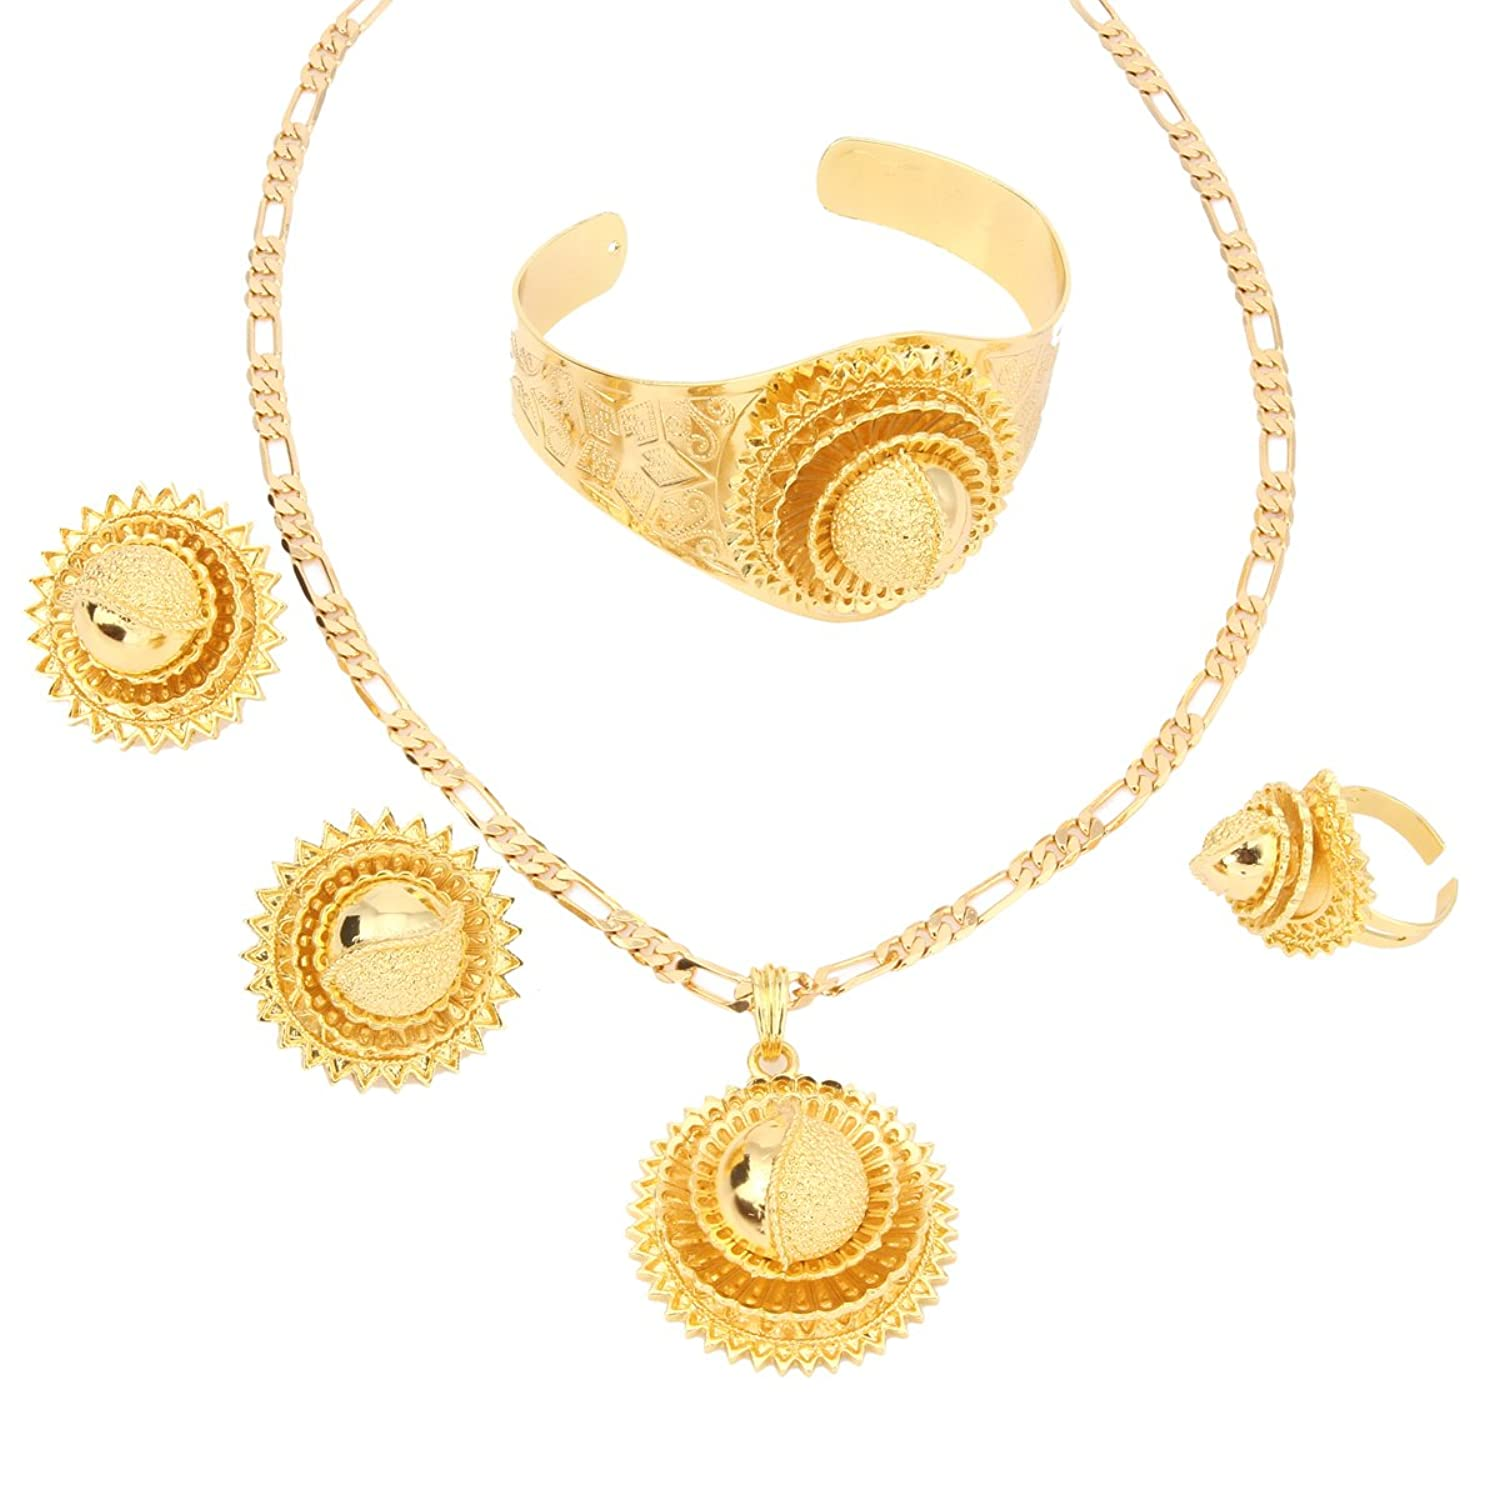 Online jewellery shopping in dubai